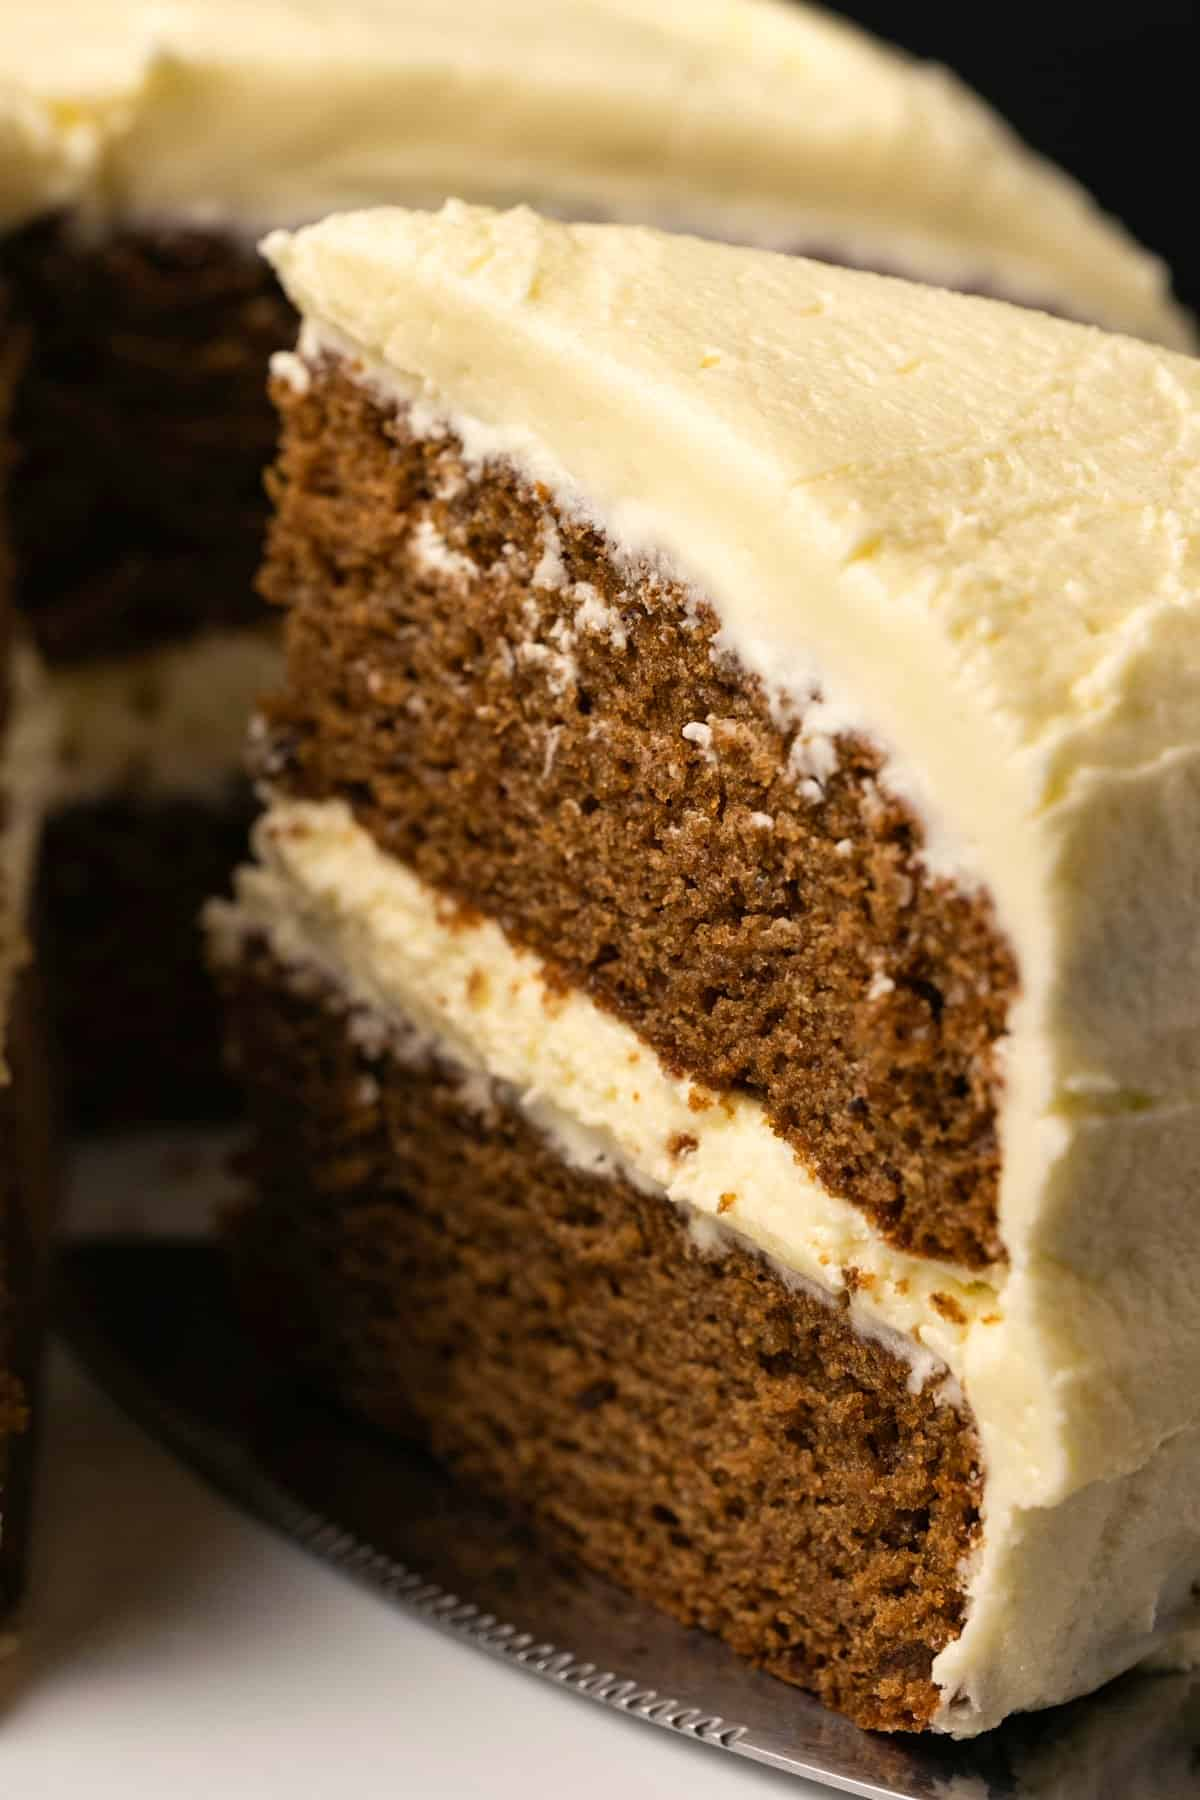 Vegan gingerbread cake on a white cake stand with one slice cut and ready to serve.